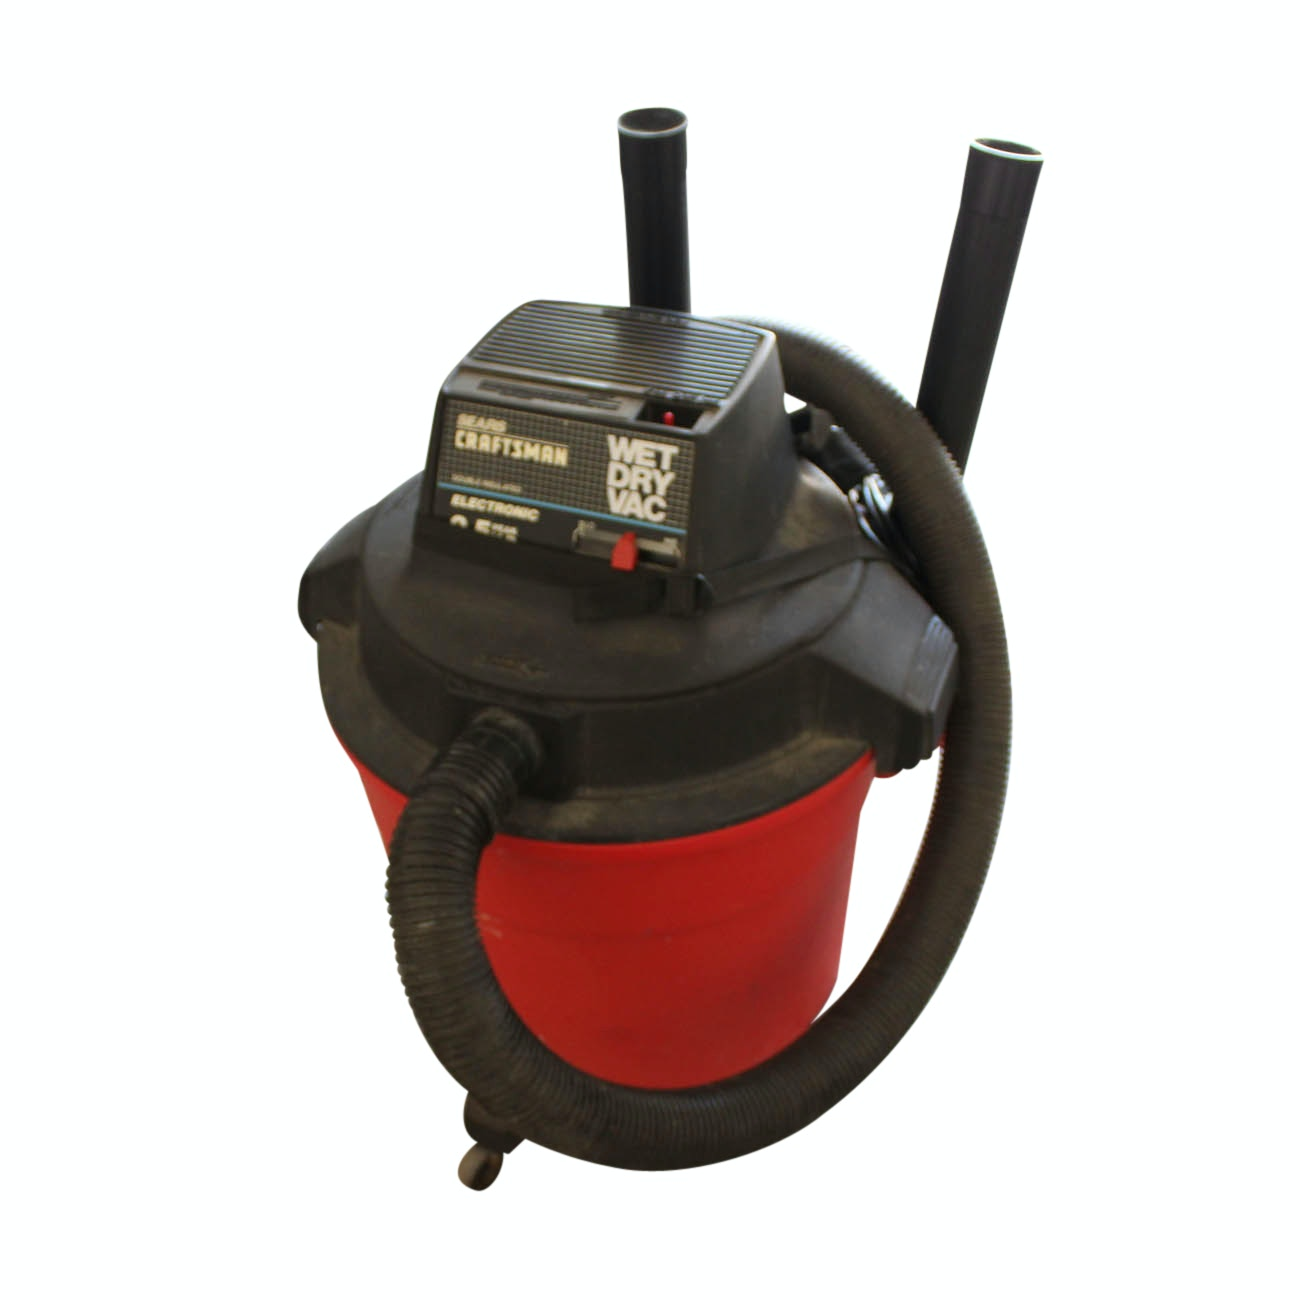 Sears Craftsman Wet Dry Vacuum